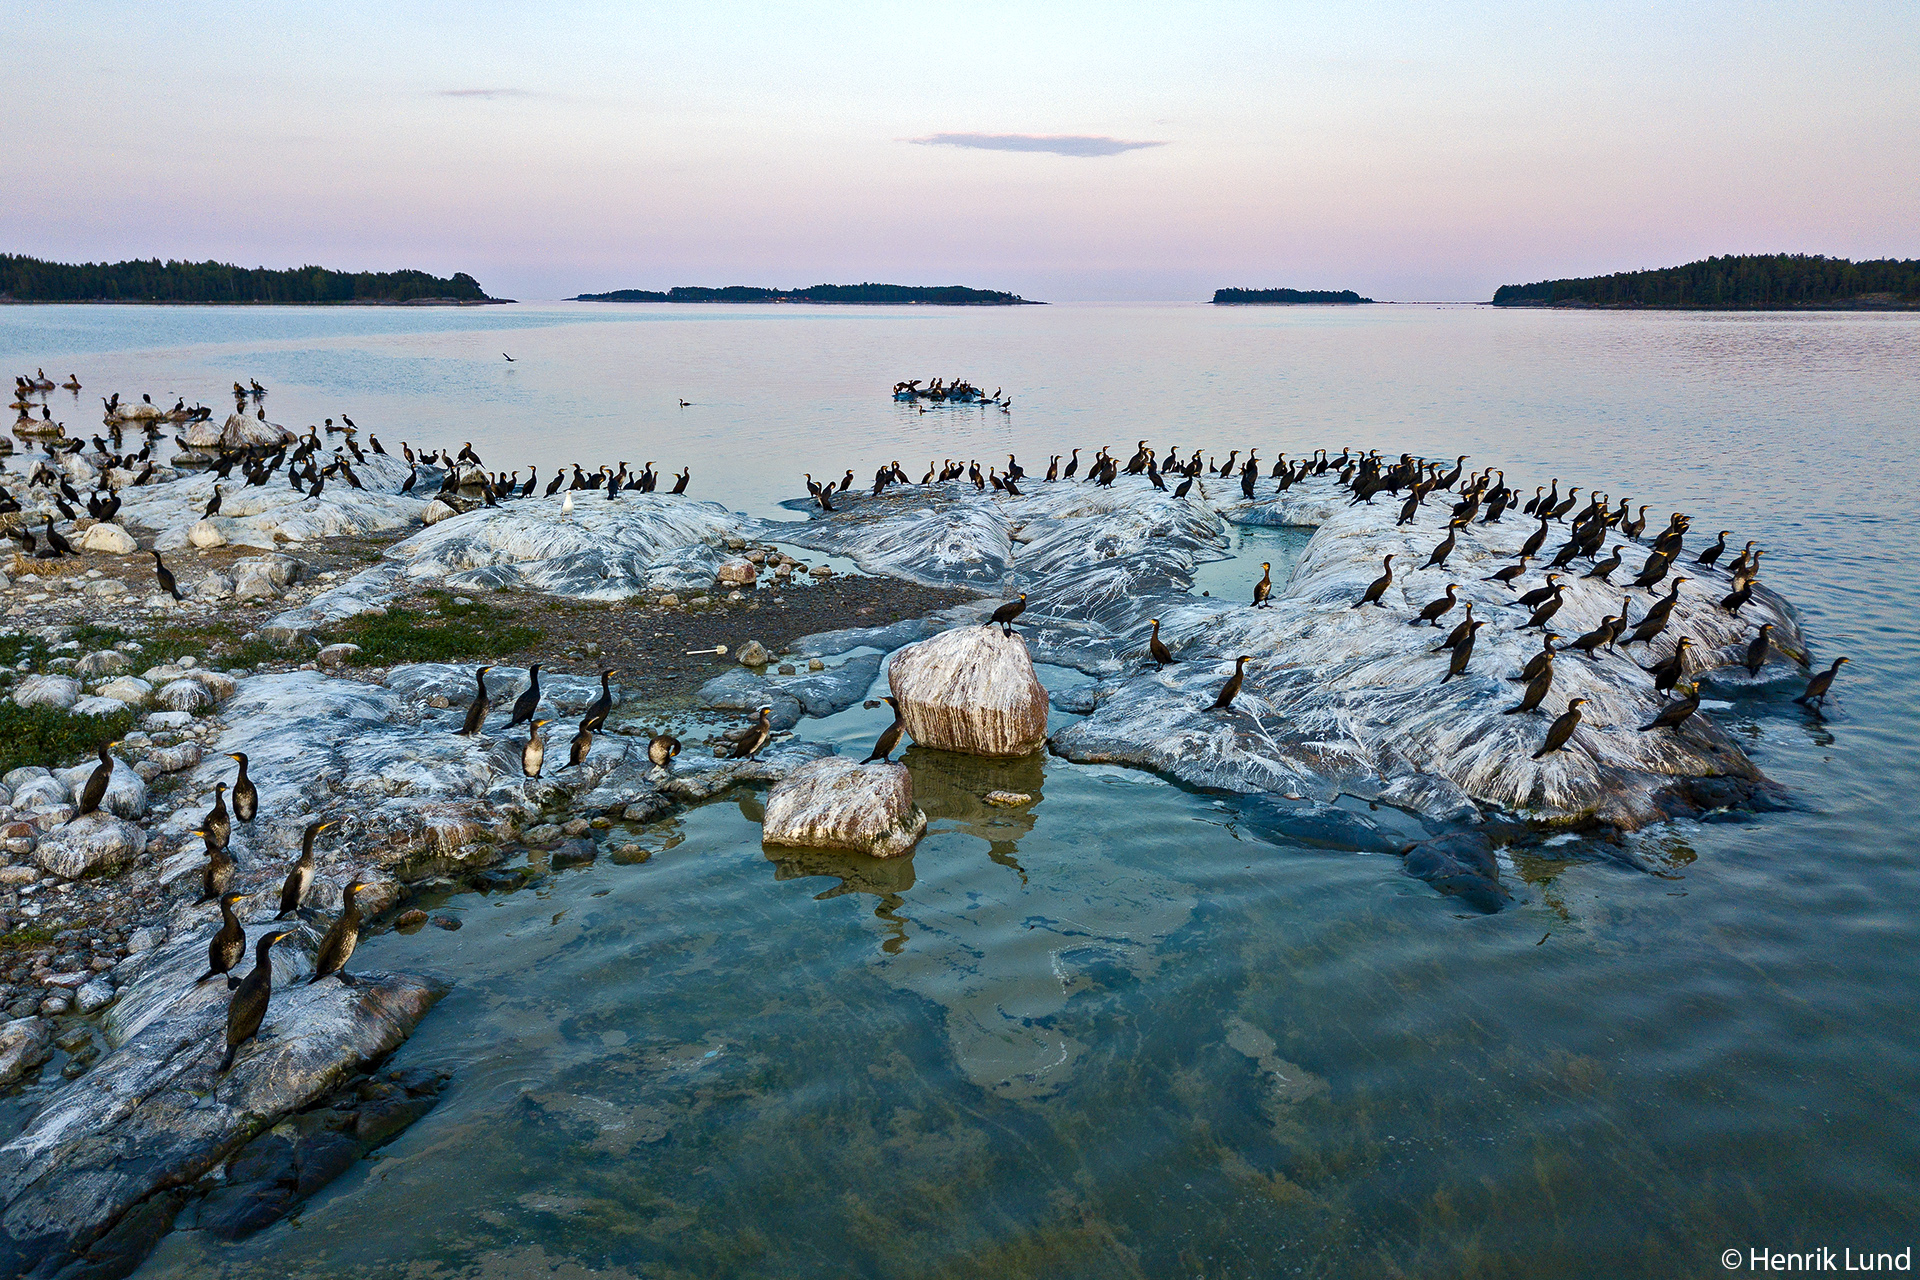 Great cormorants on their island in the Finnish archipelago, surrounded by a sea with cyanobacteria floating around. Porvoo, Finland, July 2018.